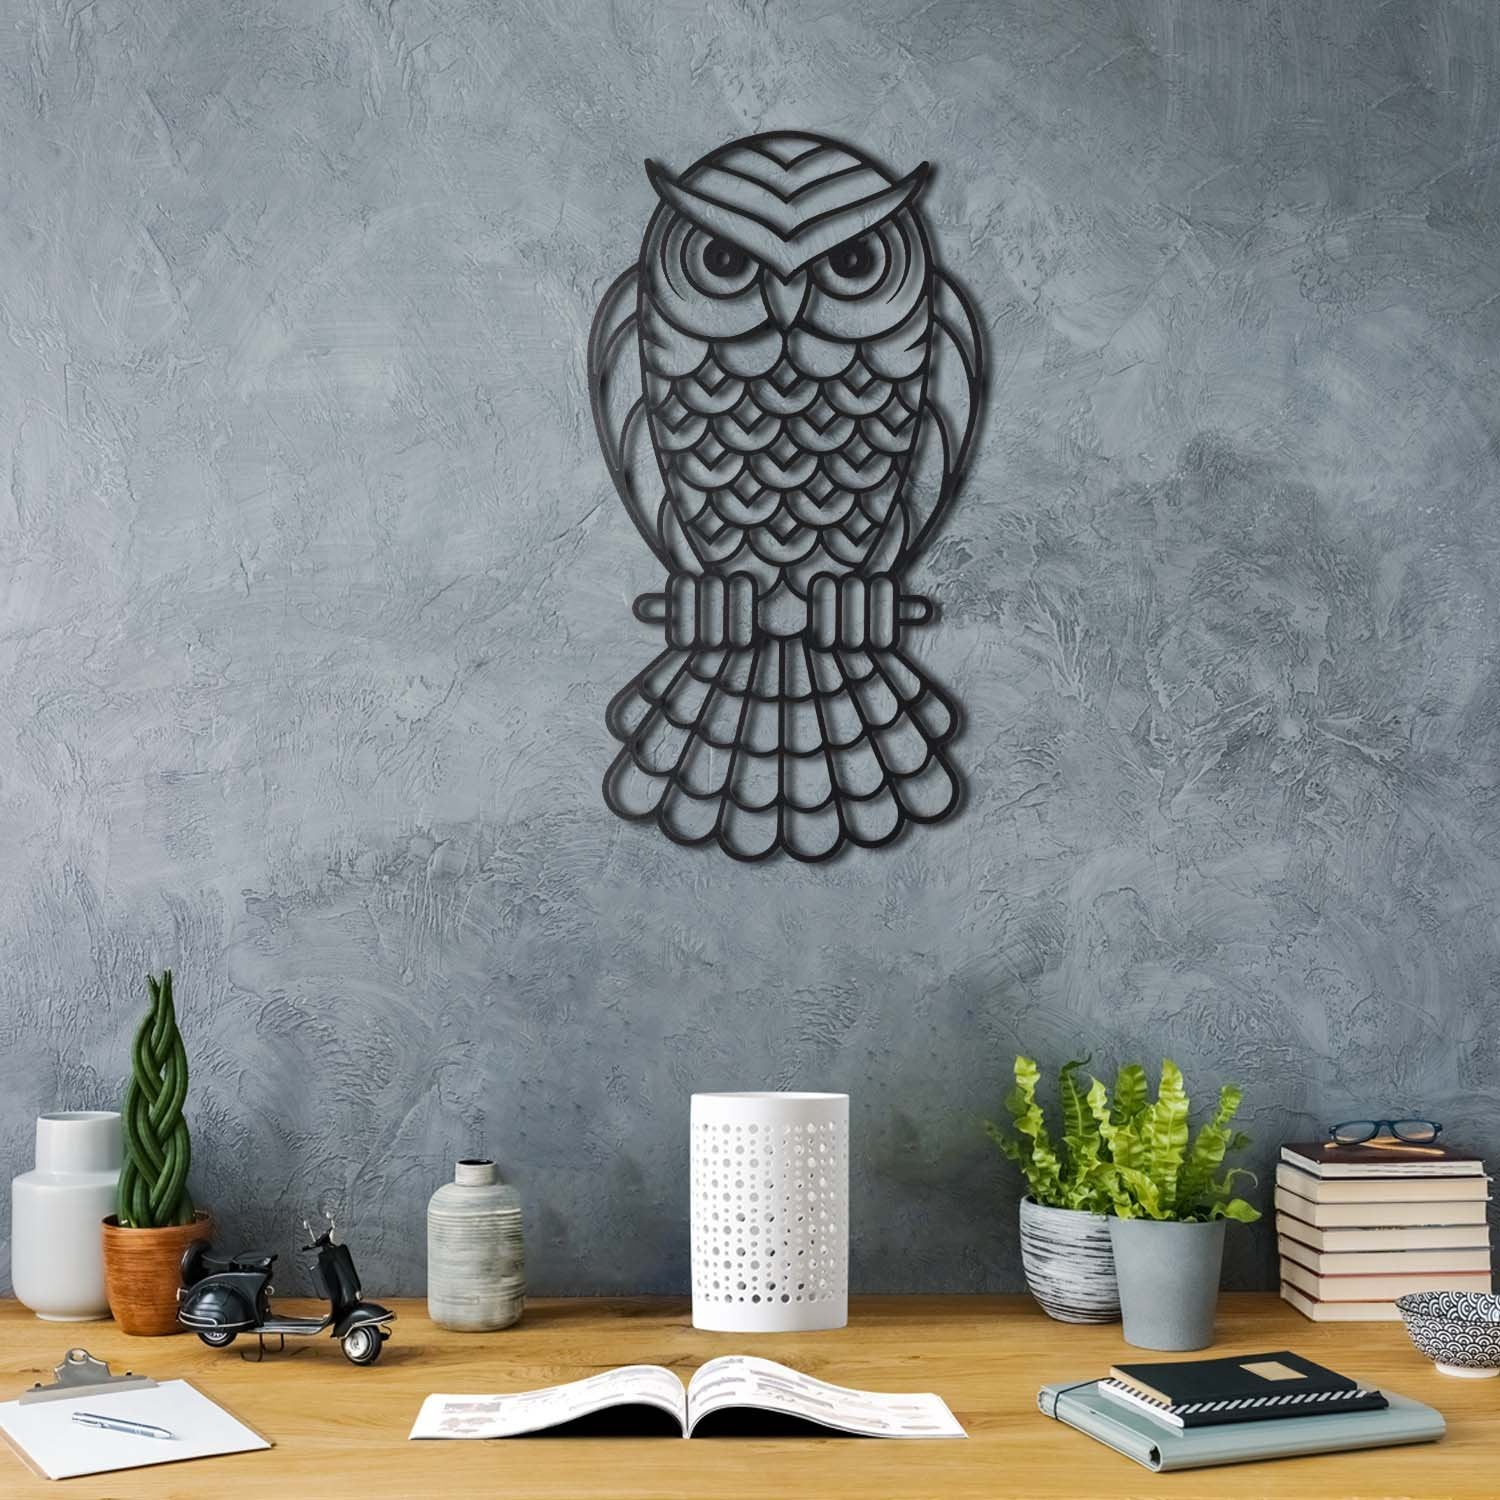 Bystag metal dekoratif duvar aksesuarı baykuş- Bystag metal wall art-wall art-wall decor-metal wall decor-owl